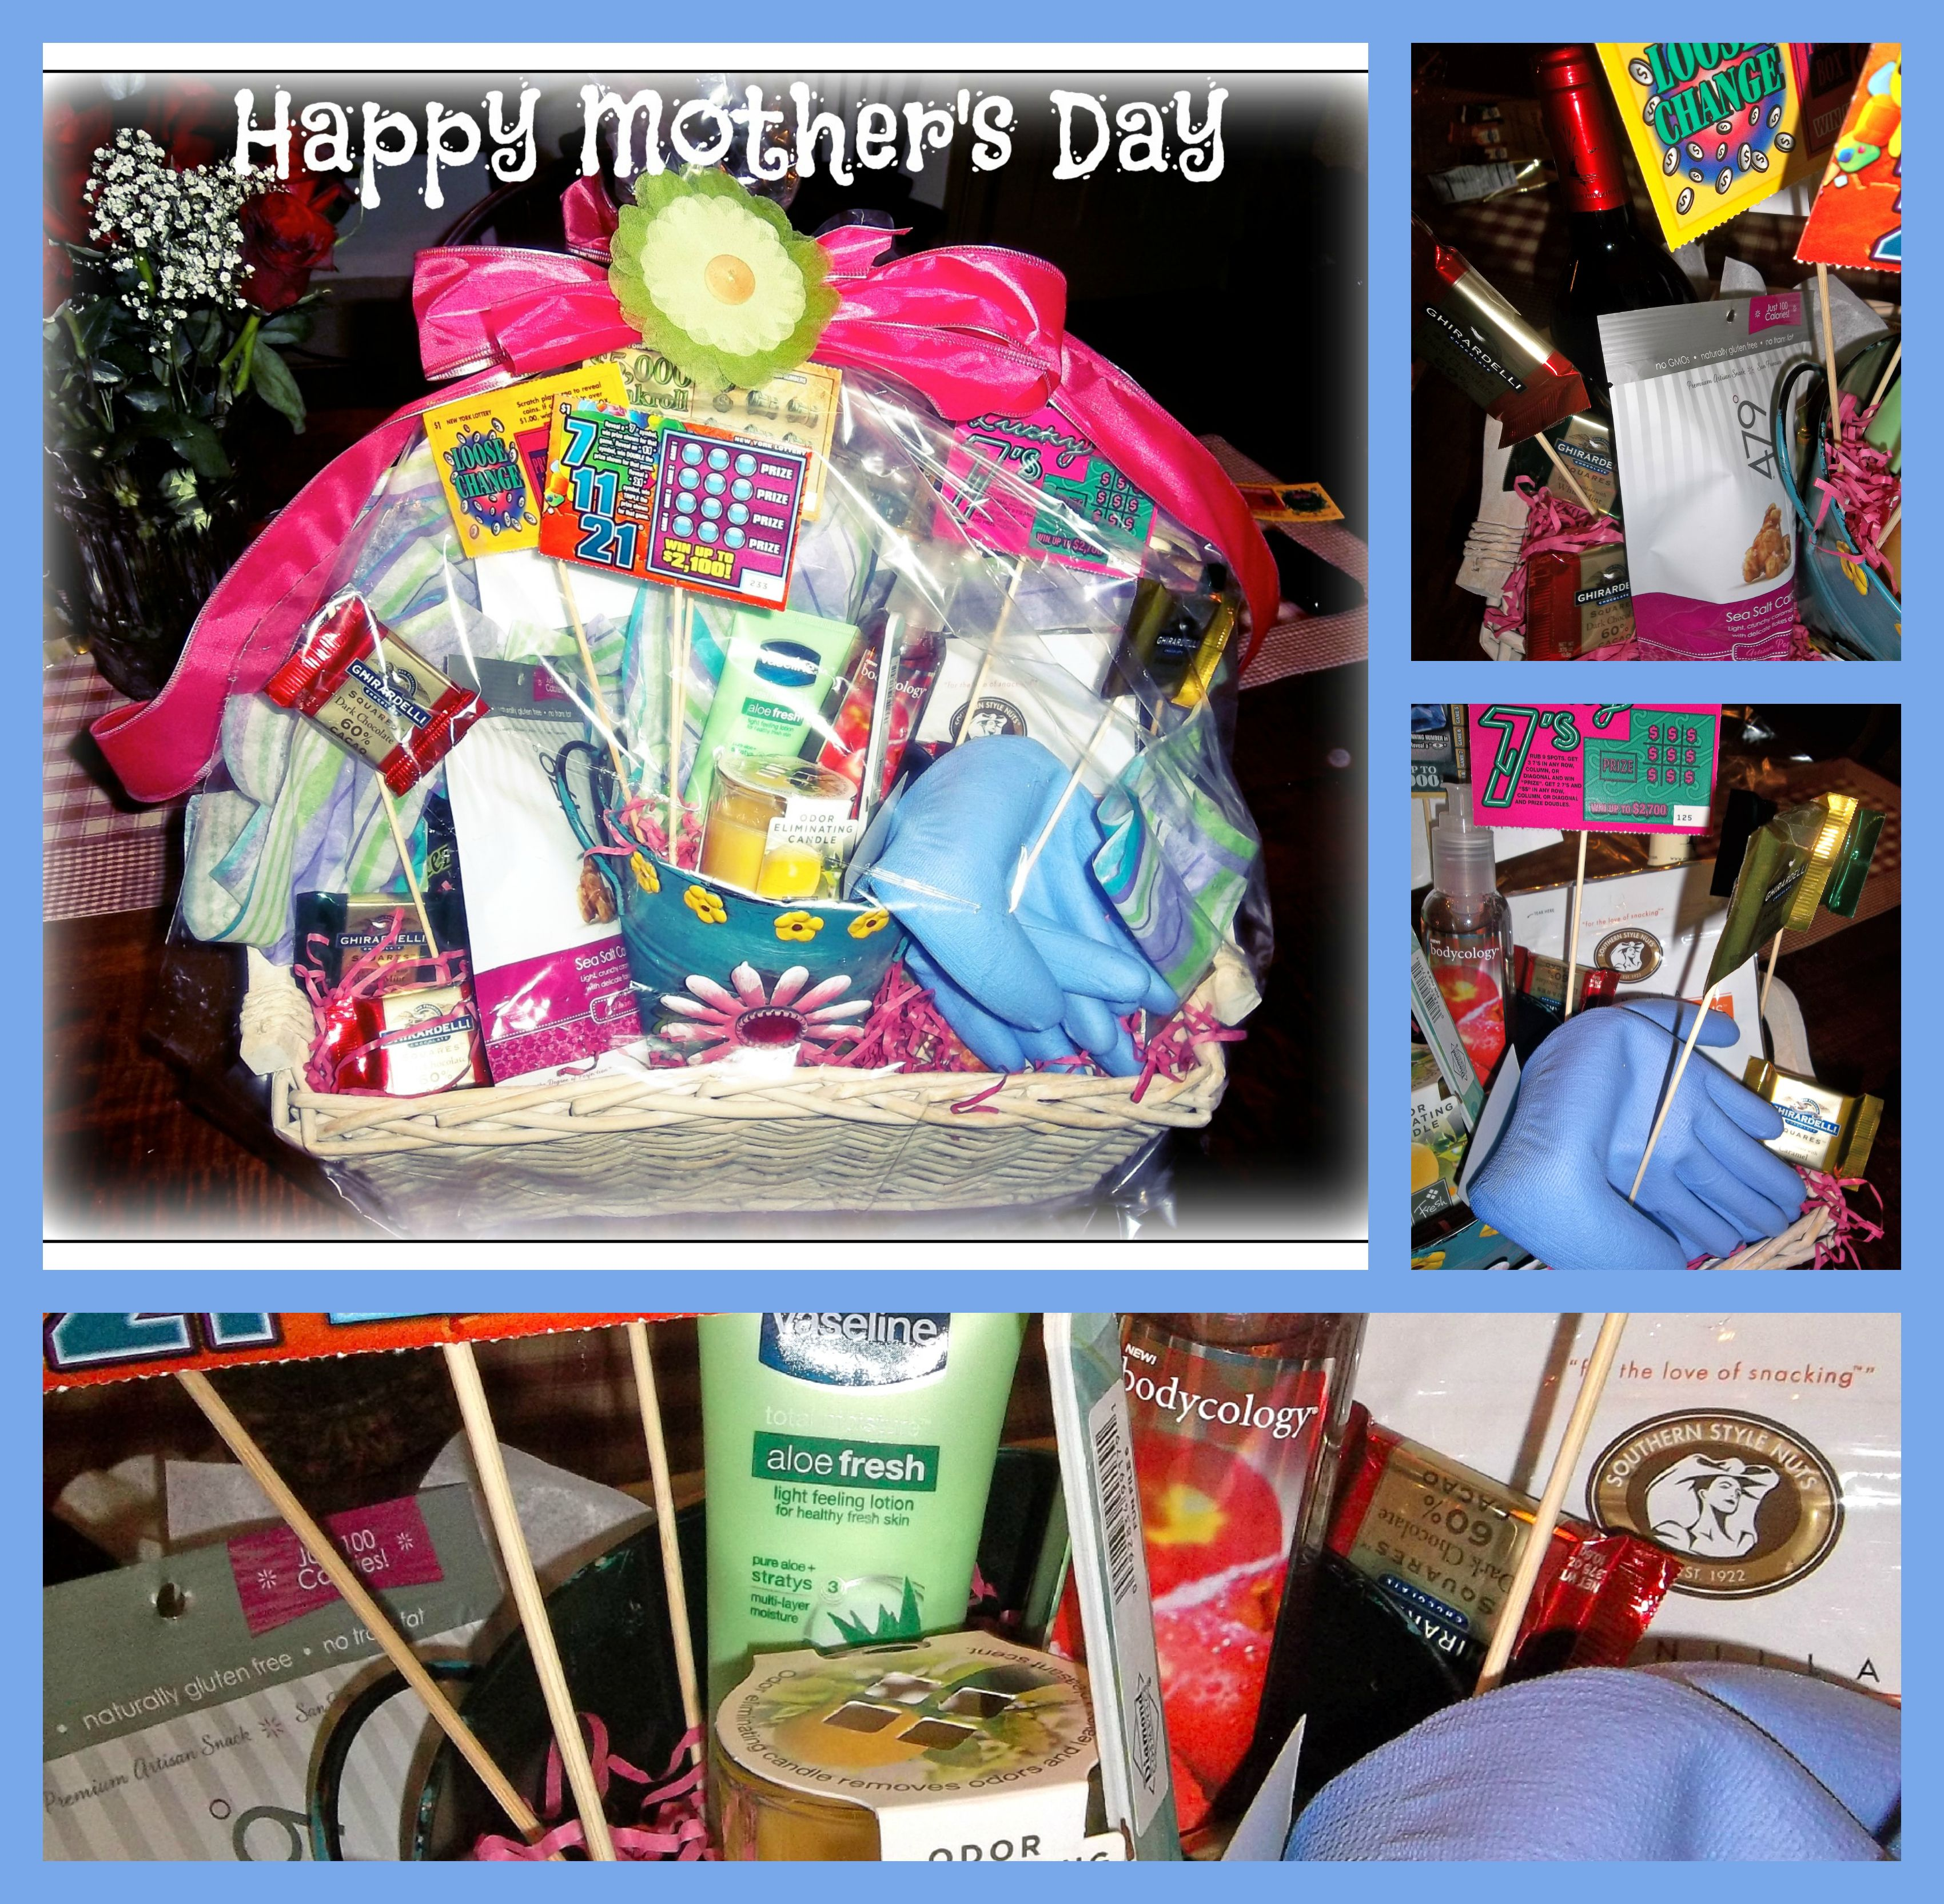 Diy do it yourself gift basket filled with goodies perfect for diy do it yourself gift basket filled with goodies perfect for mothers day solutioingenieria Image collections